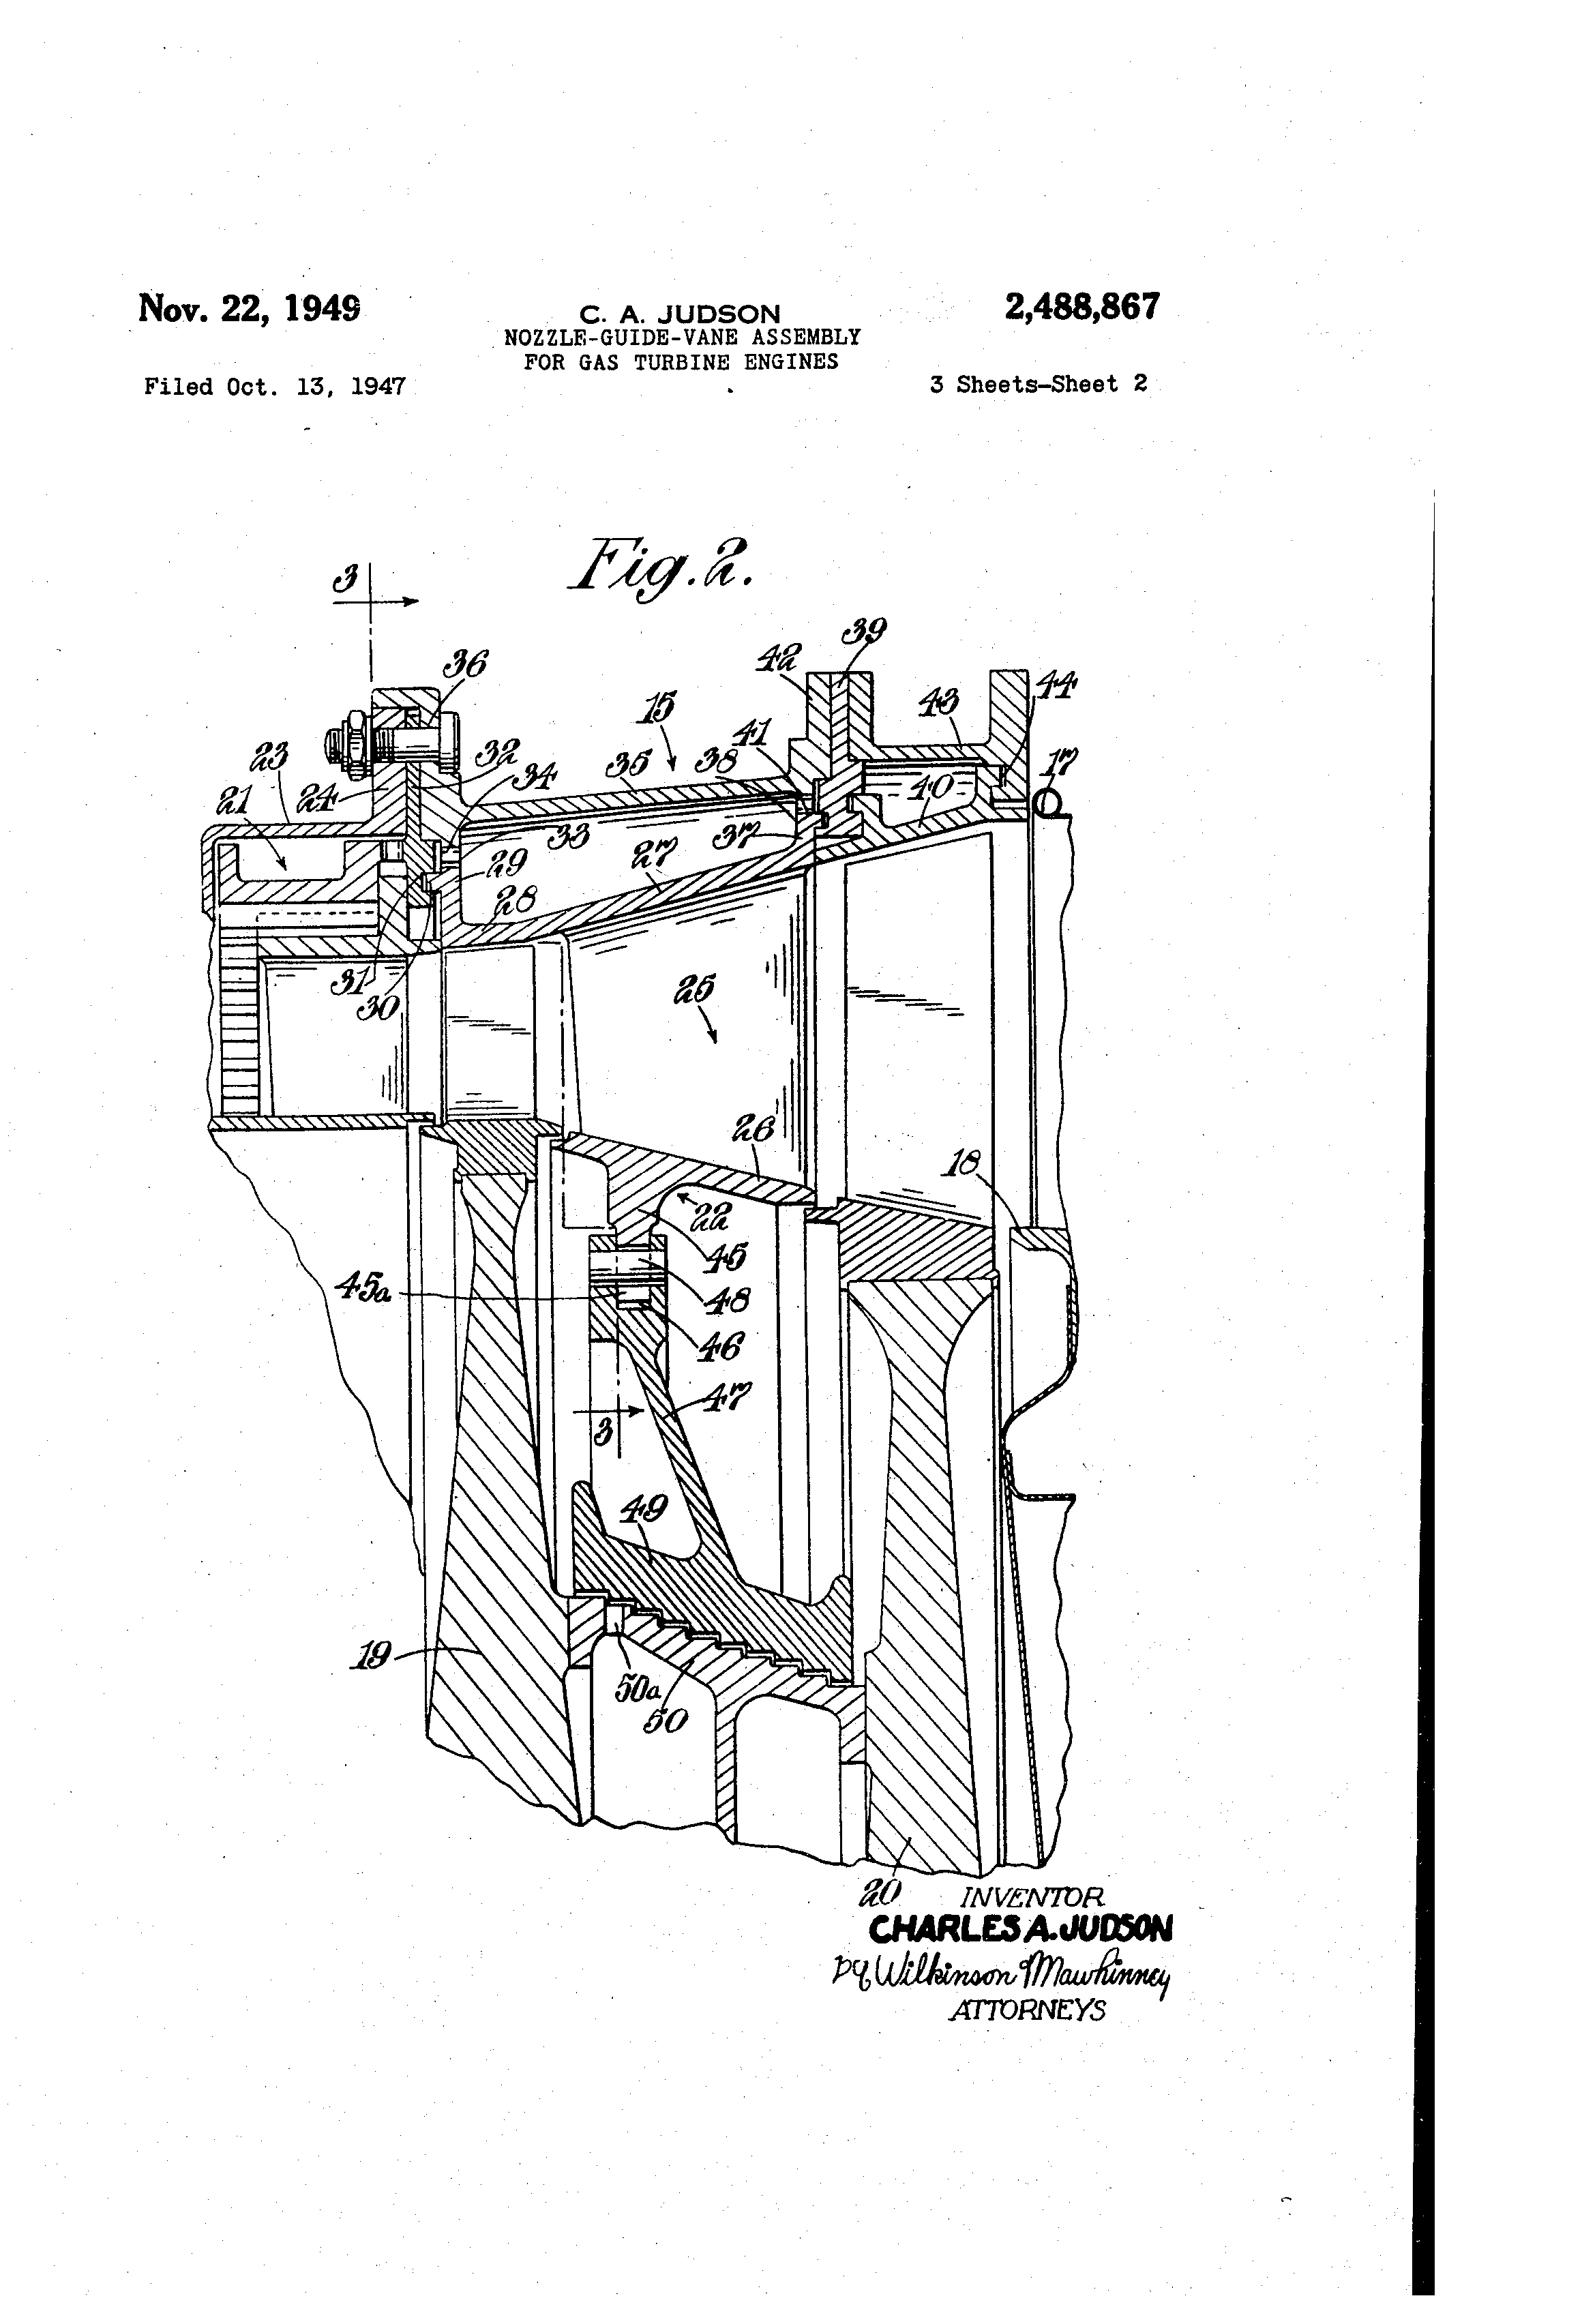 patent us2488867 - nozzle-guide-vane assembly for gas turbine engines